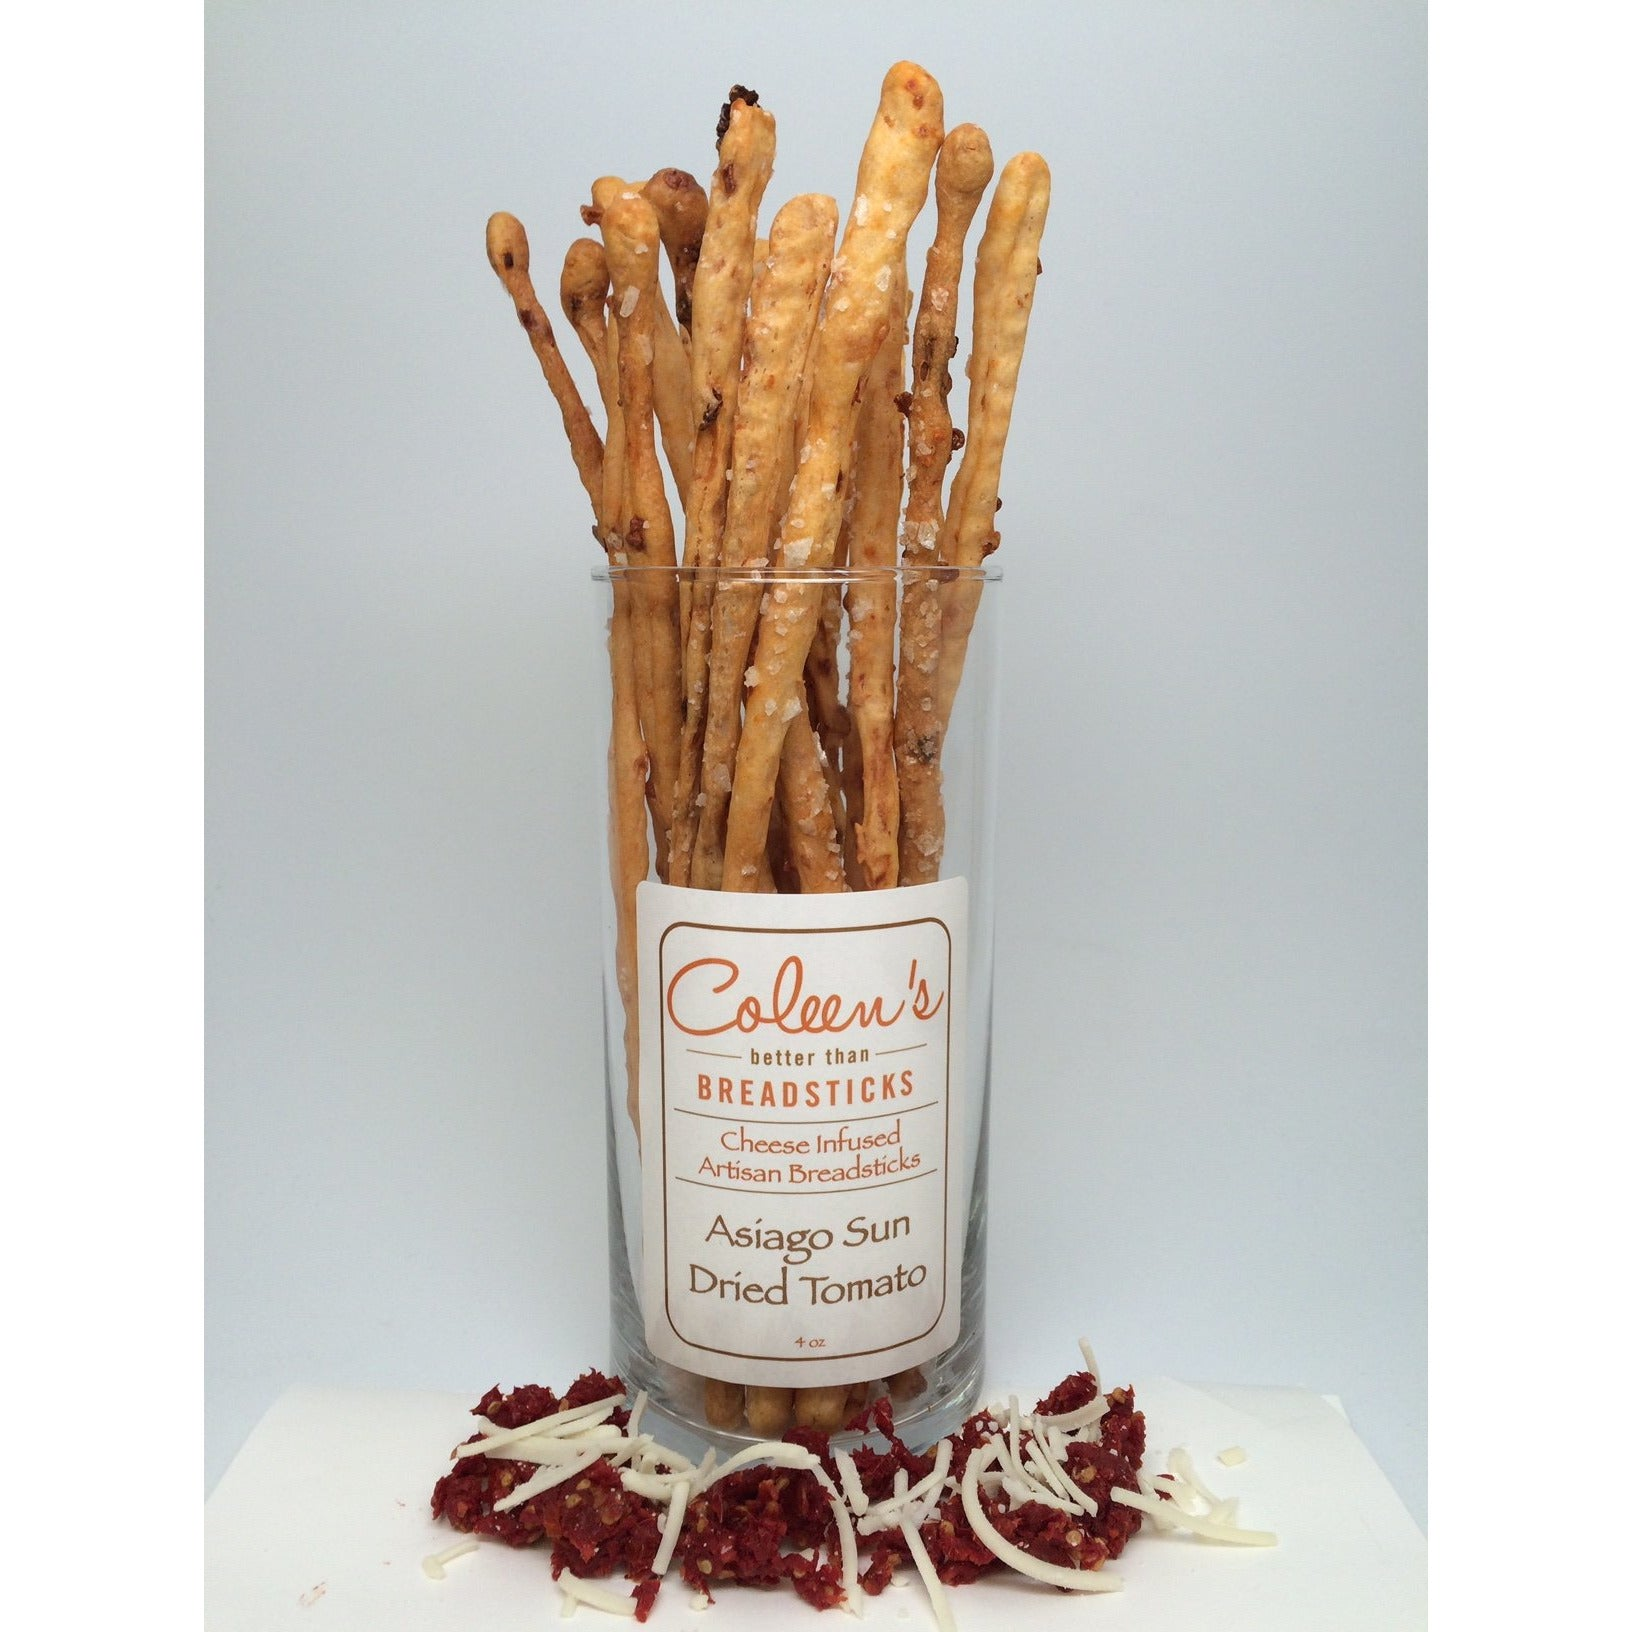 Coleen's Asiago Sun Dried Tomato Breadsticks 4oz